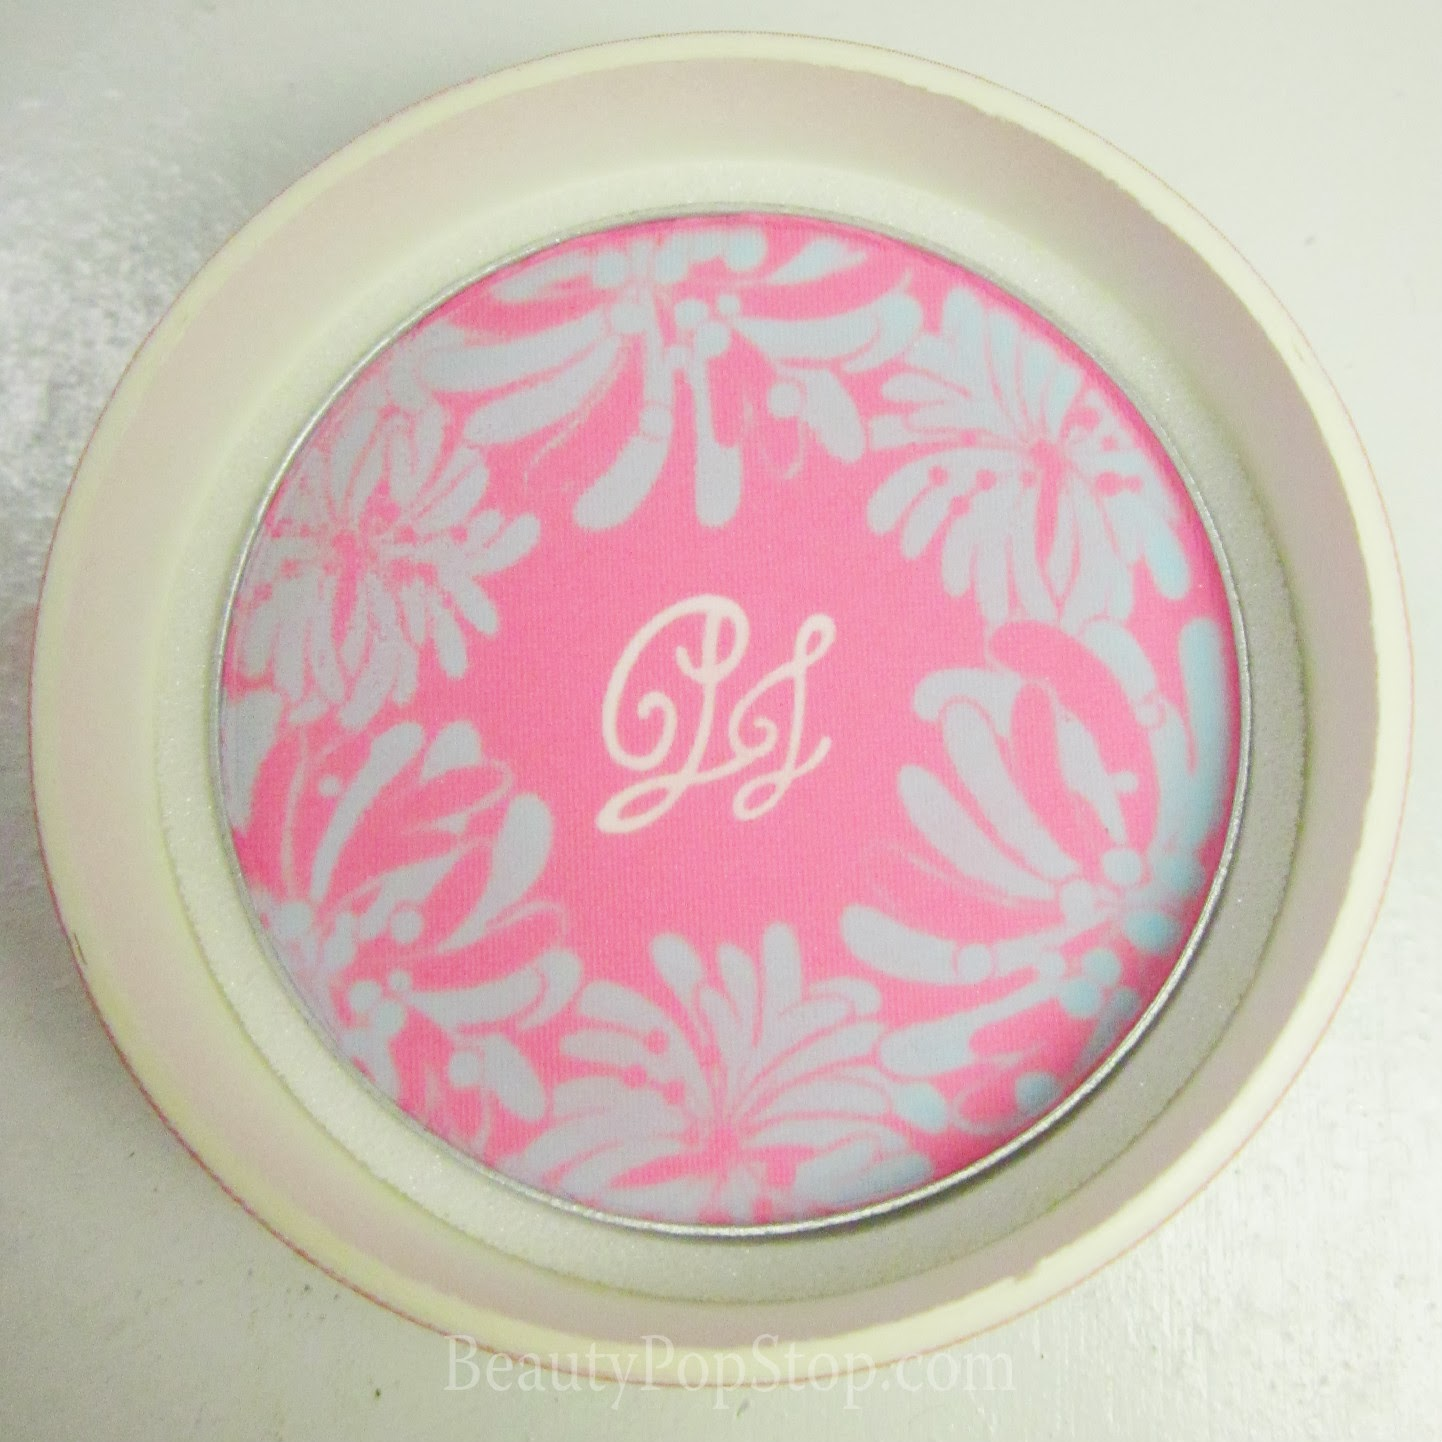 paul and joe beaute spring 2014 color powder azalea blush review